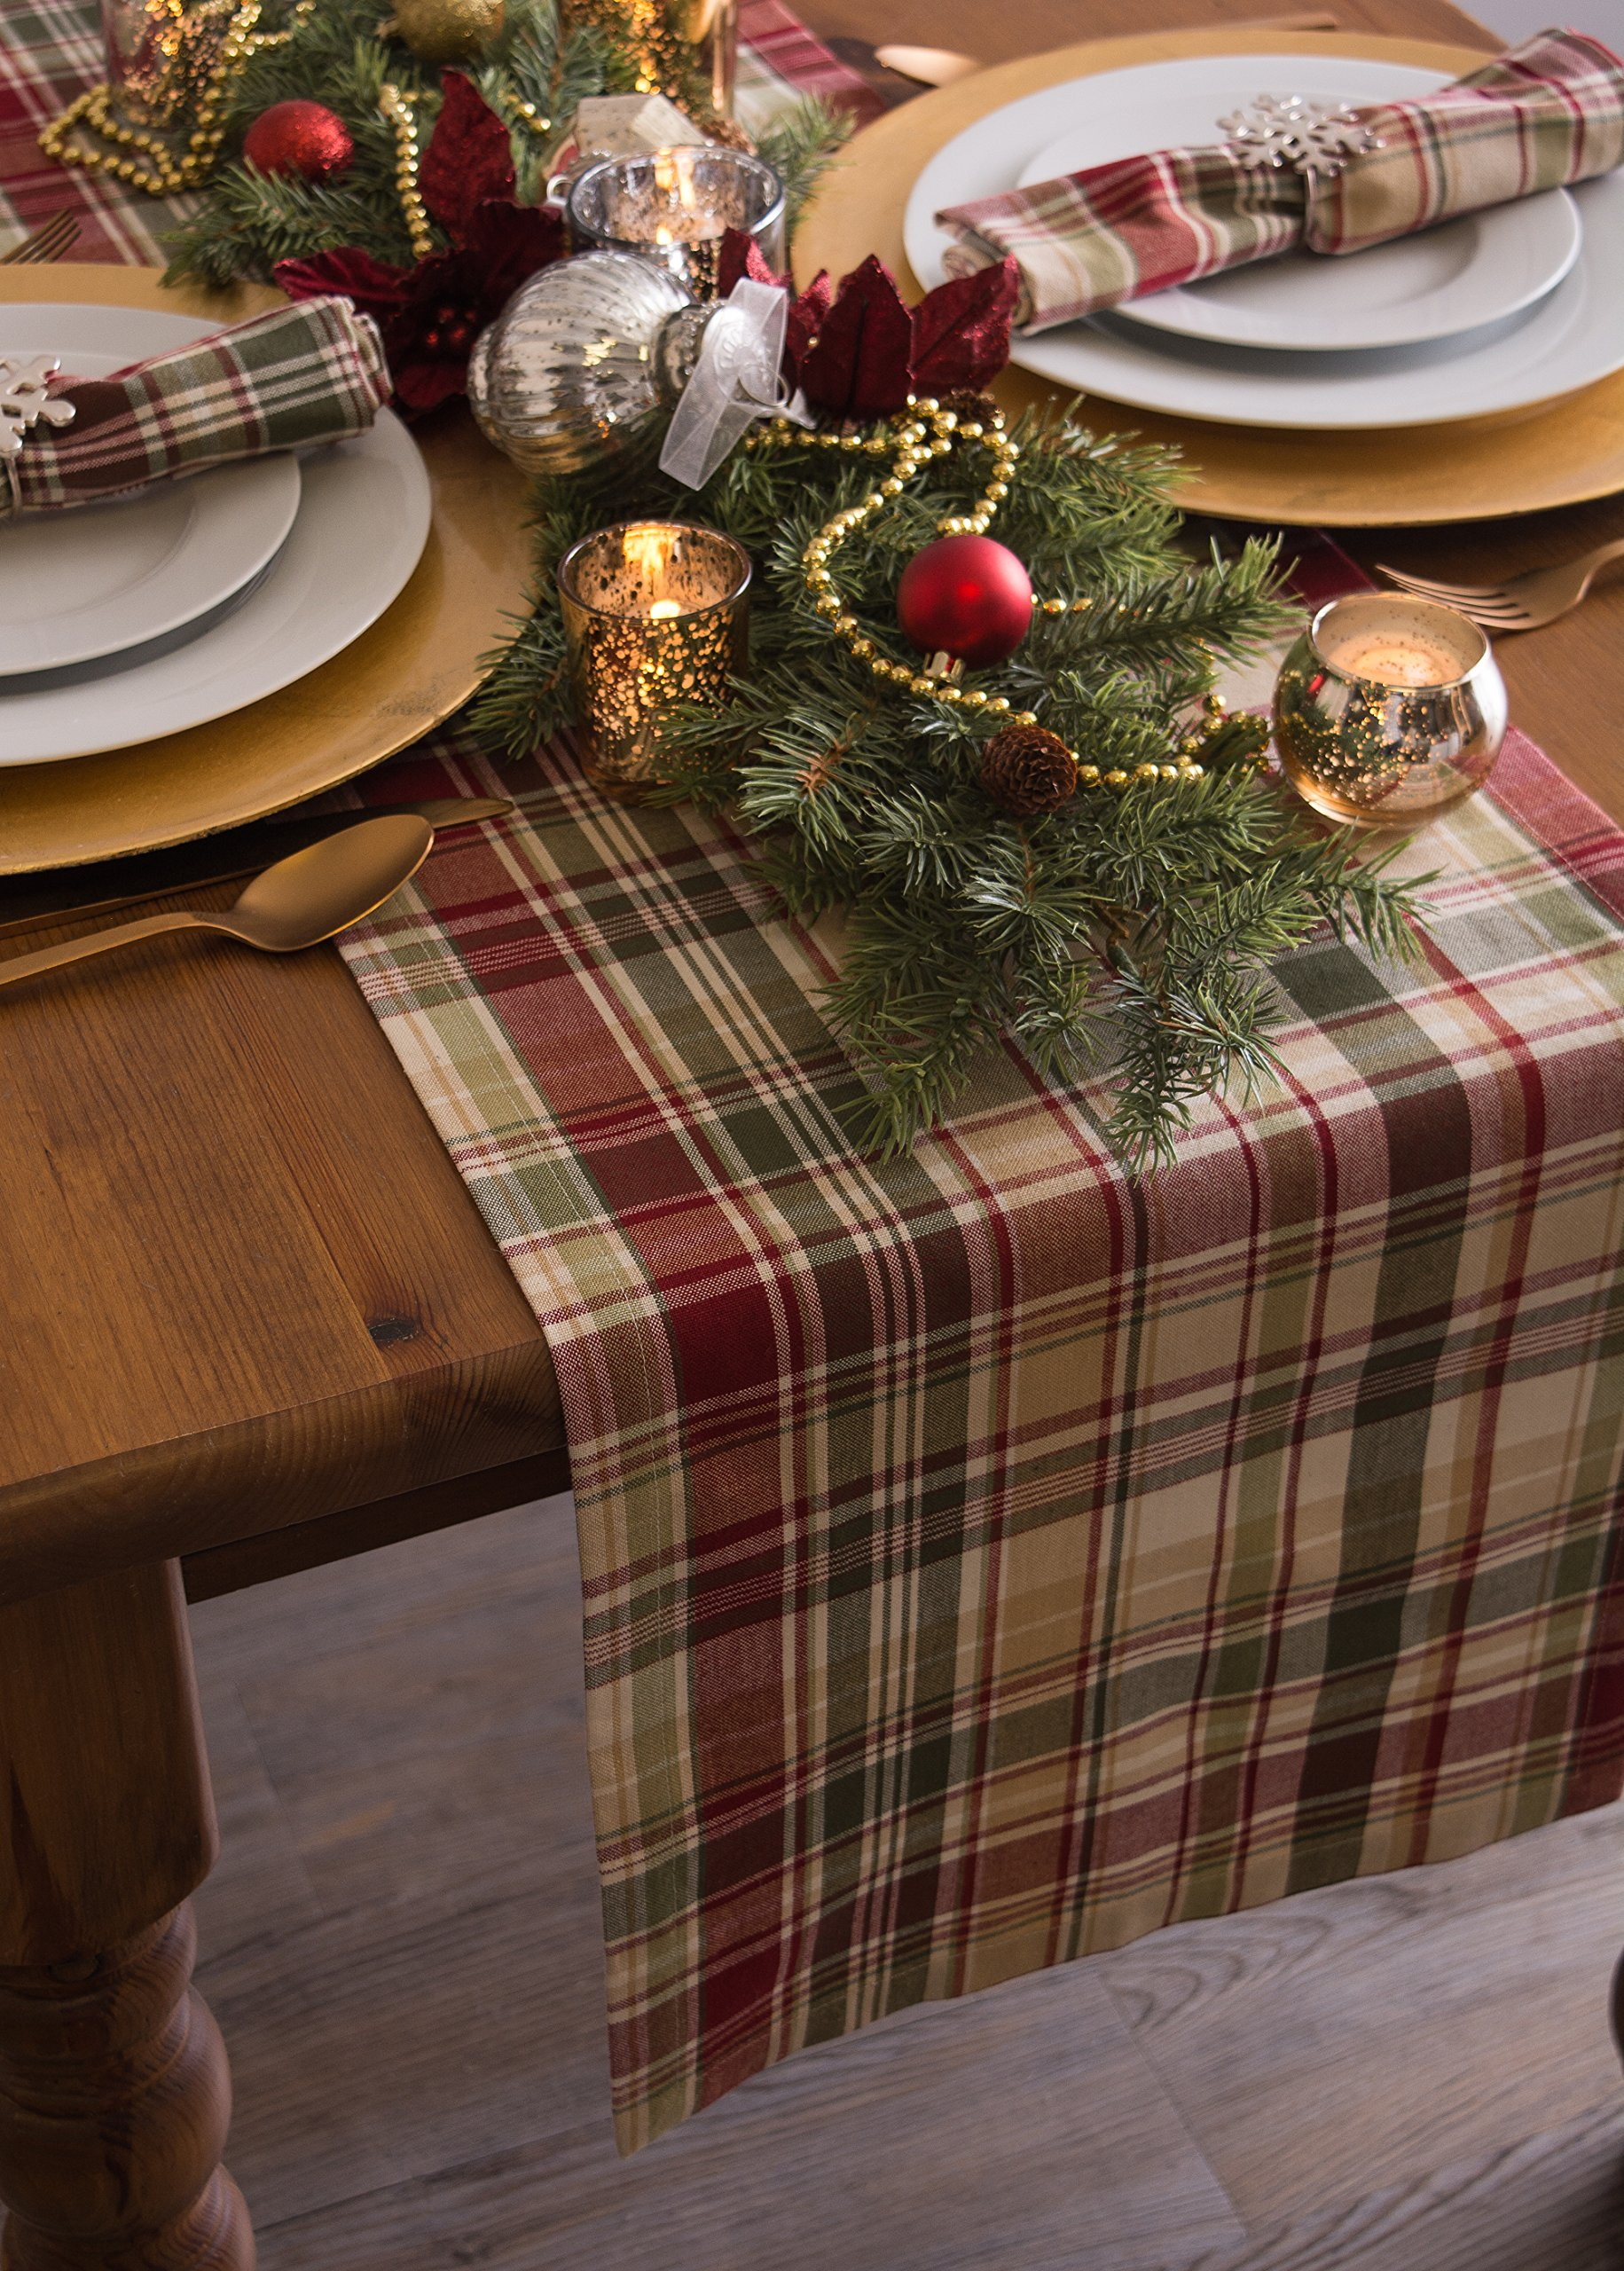 Cabin Plaid 100% Cotton Table Runner (14x108'') by DII (Image #8)